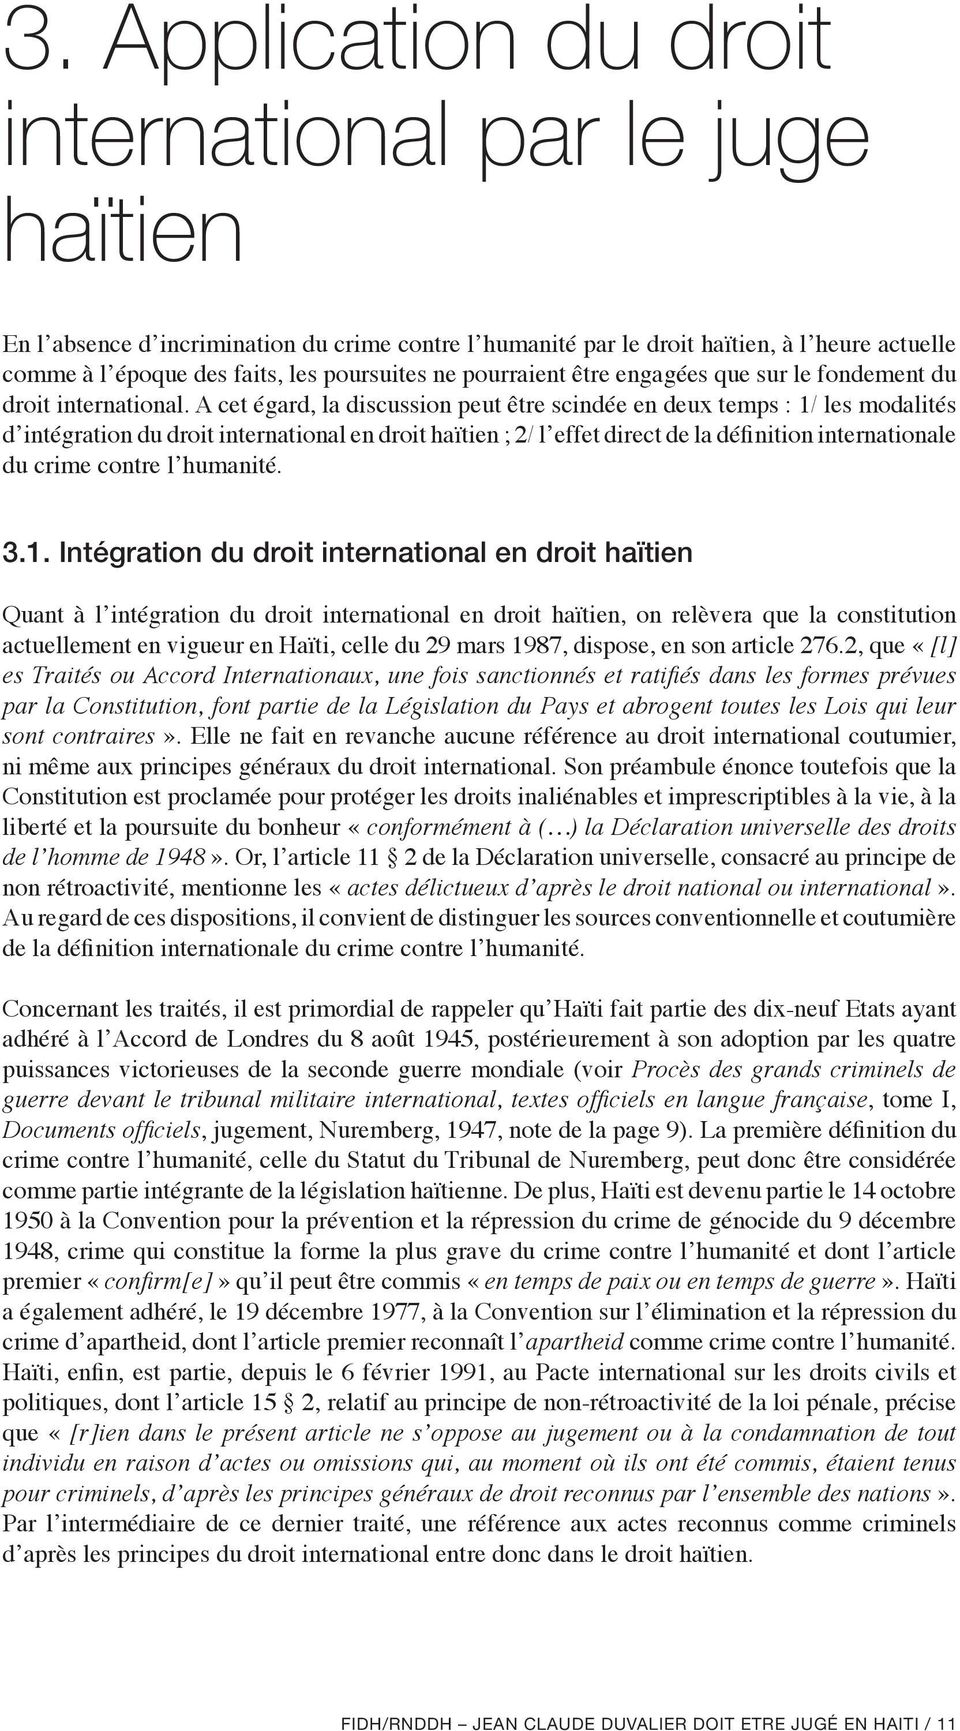 A cet égard, la discussion peut être scindée en deux temps : 1/ les modalités d intégration du droit international en droit haïtien ; 2/ l effet direct de la définition internationale du crime contre